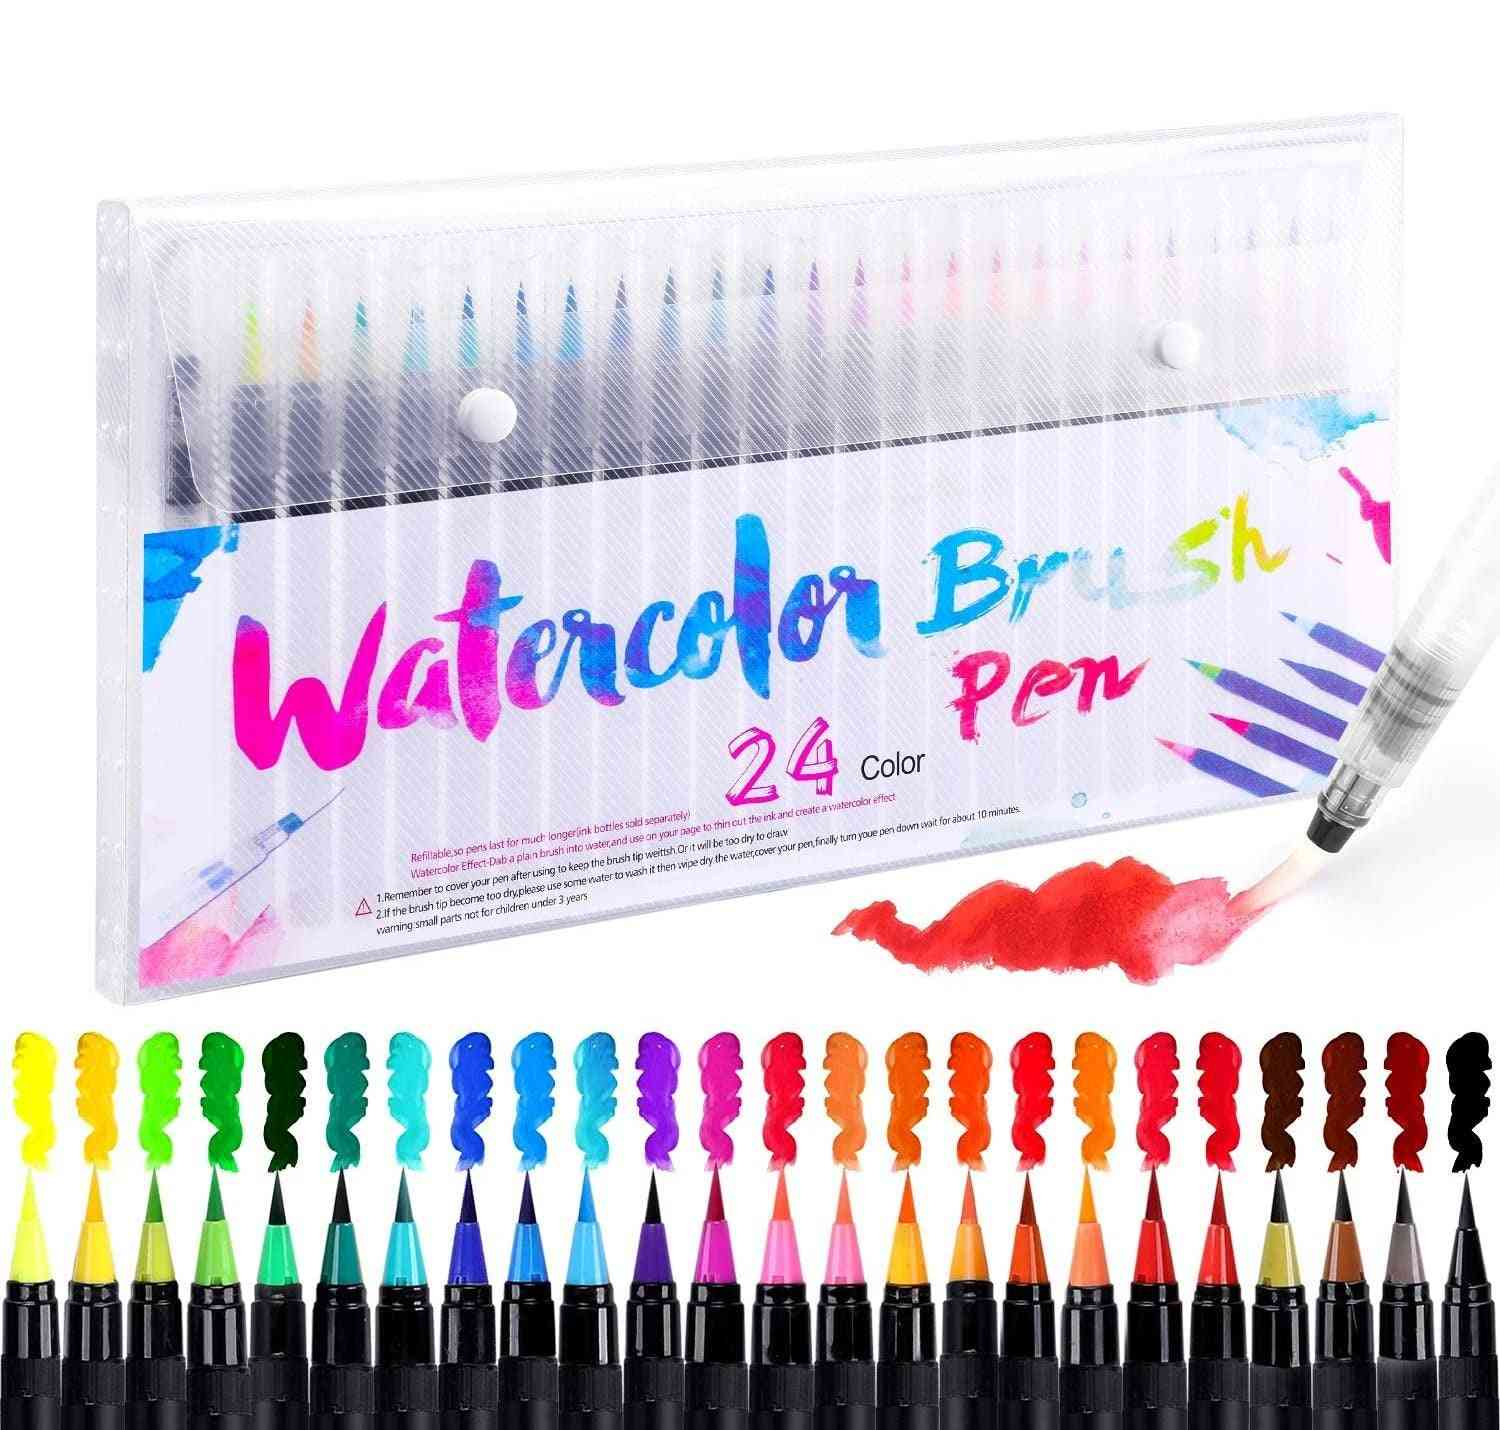 Watercolor Markers For Drawing, Felt-tip Pens Set For, Brush Pen For Lettering, Art Supplies